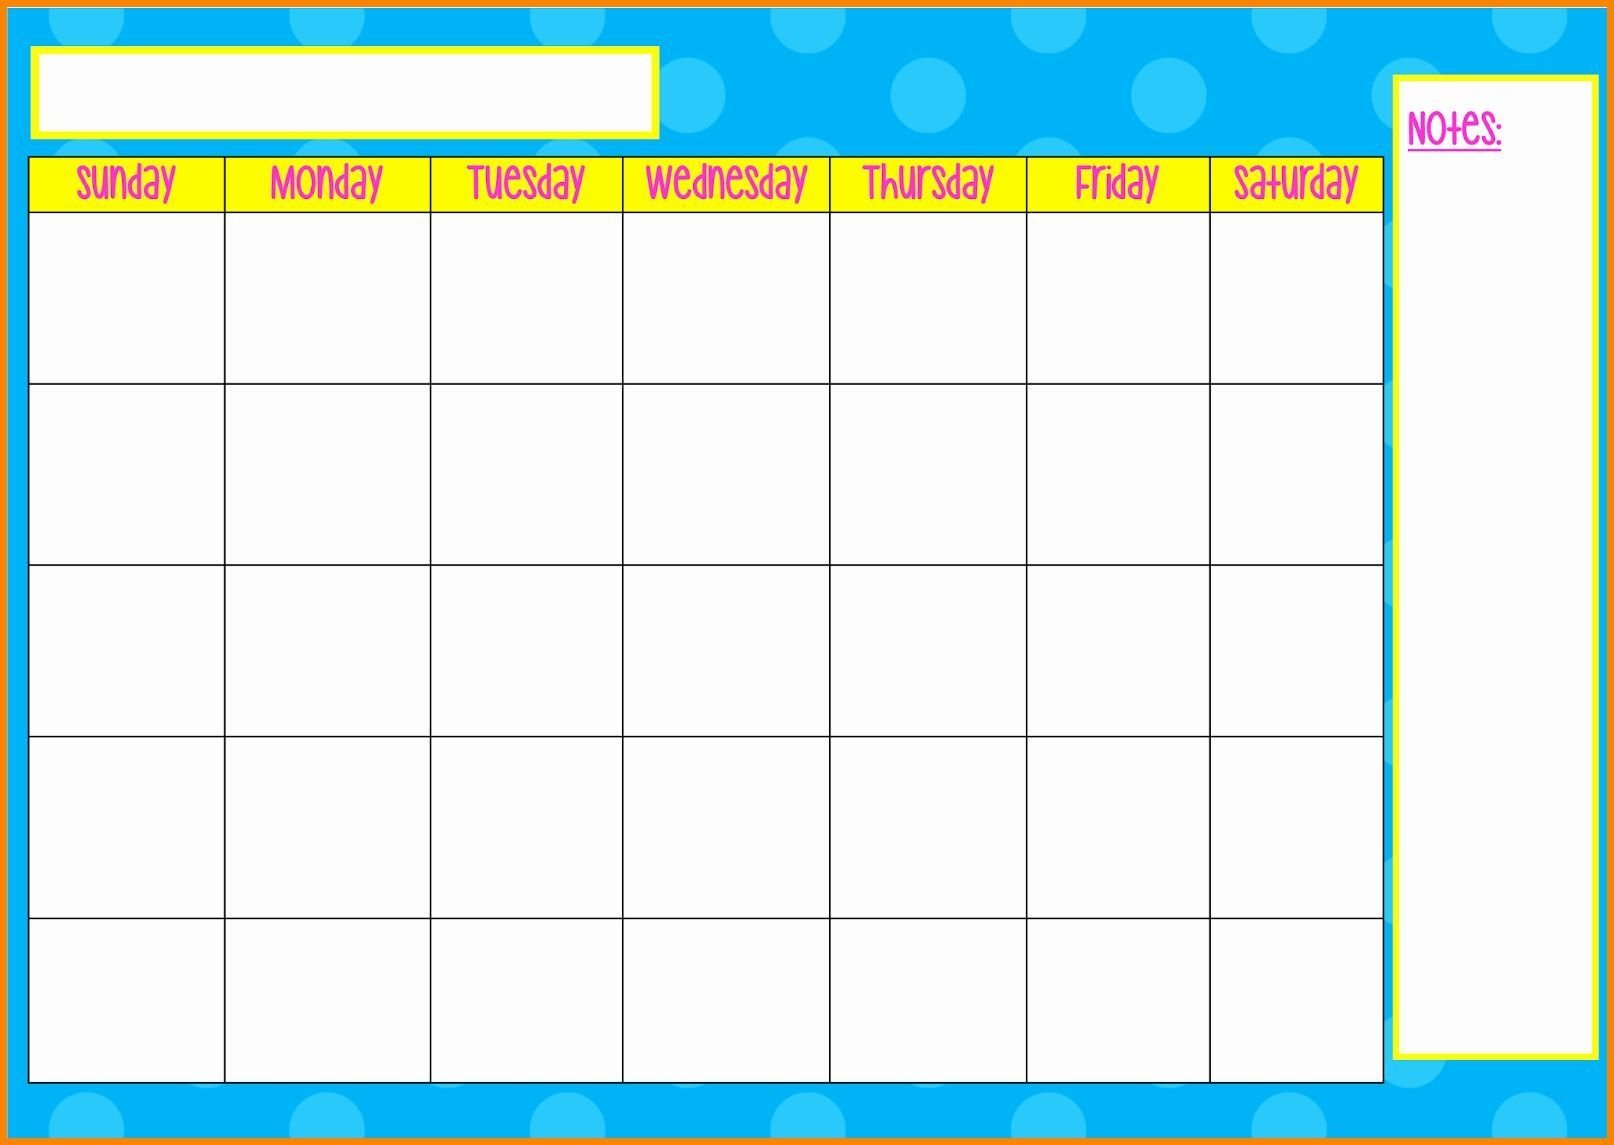 How To Monday Through Friday Calendar Word | Get Your Mon - Fri Calender Layout Download